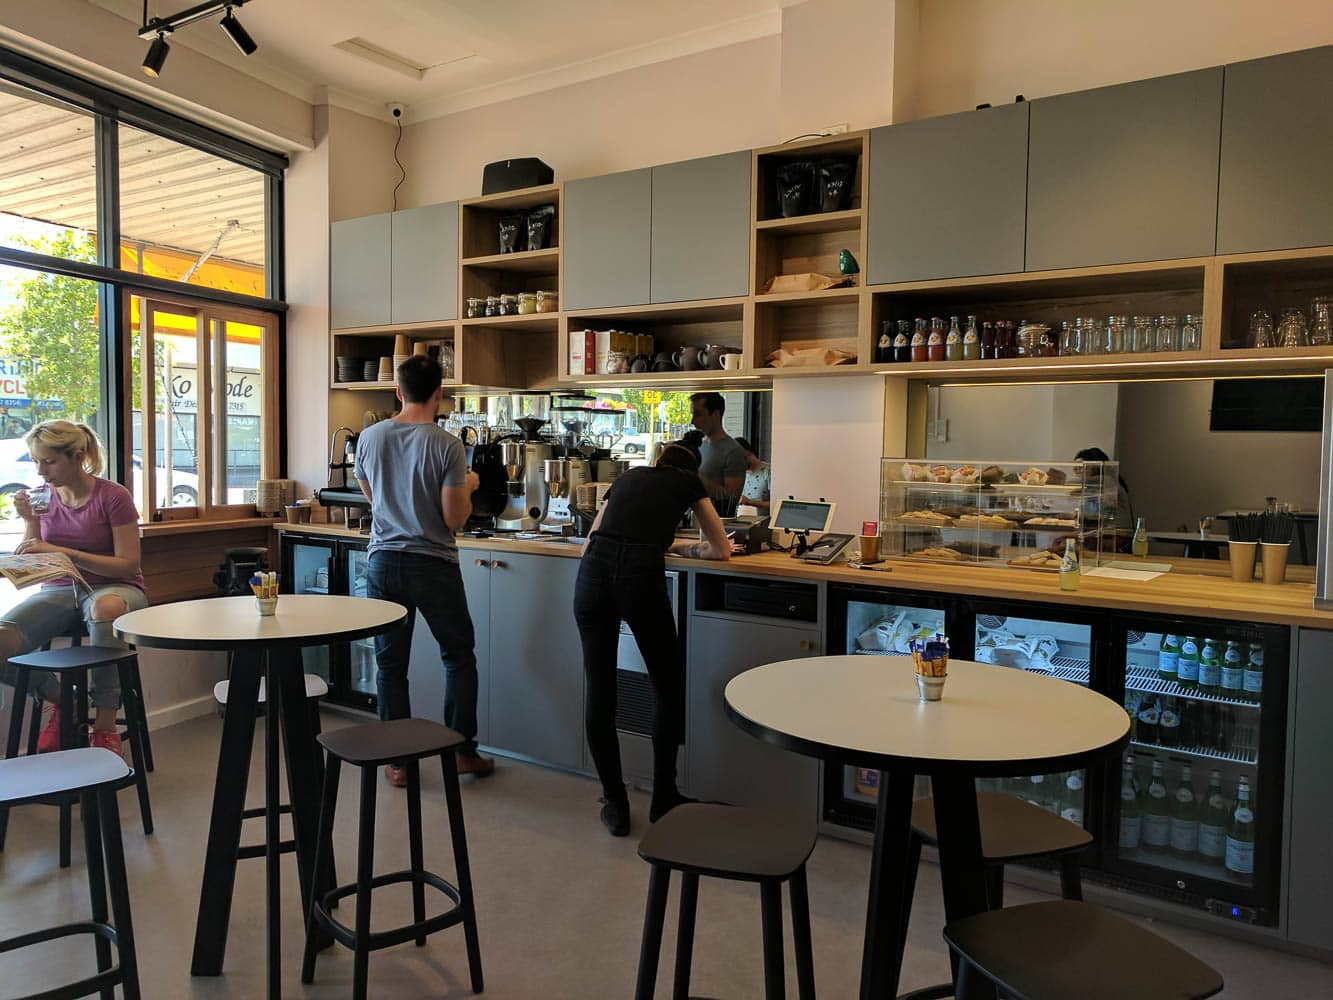 A quick visit to Open Plan Coffee Co., North Perth